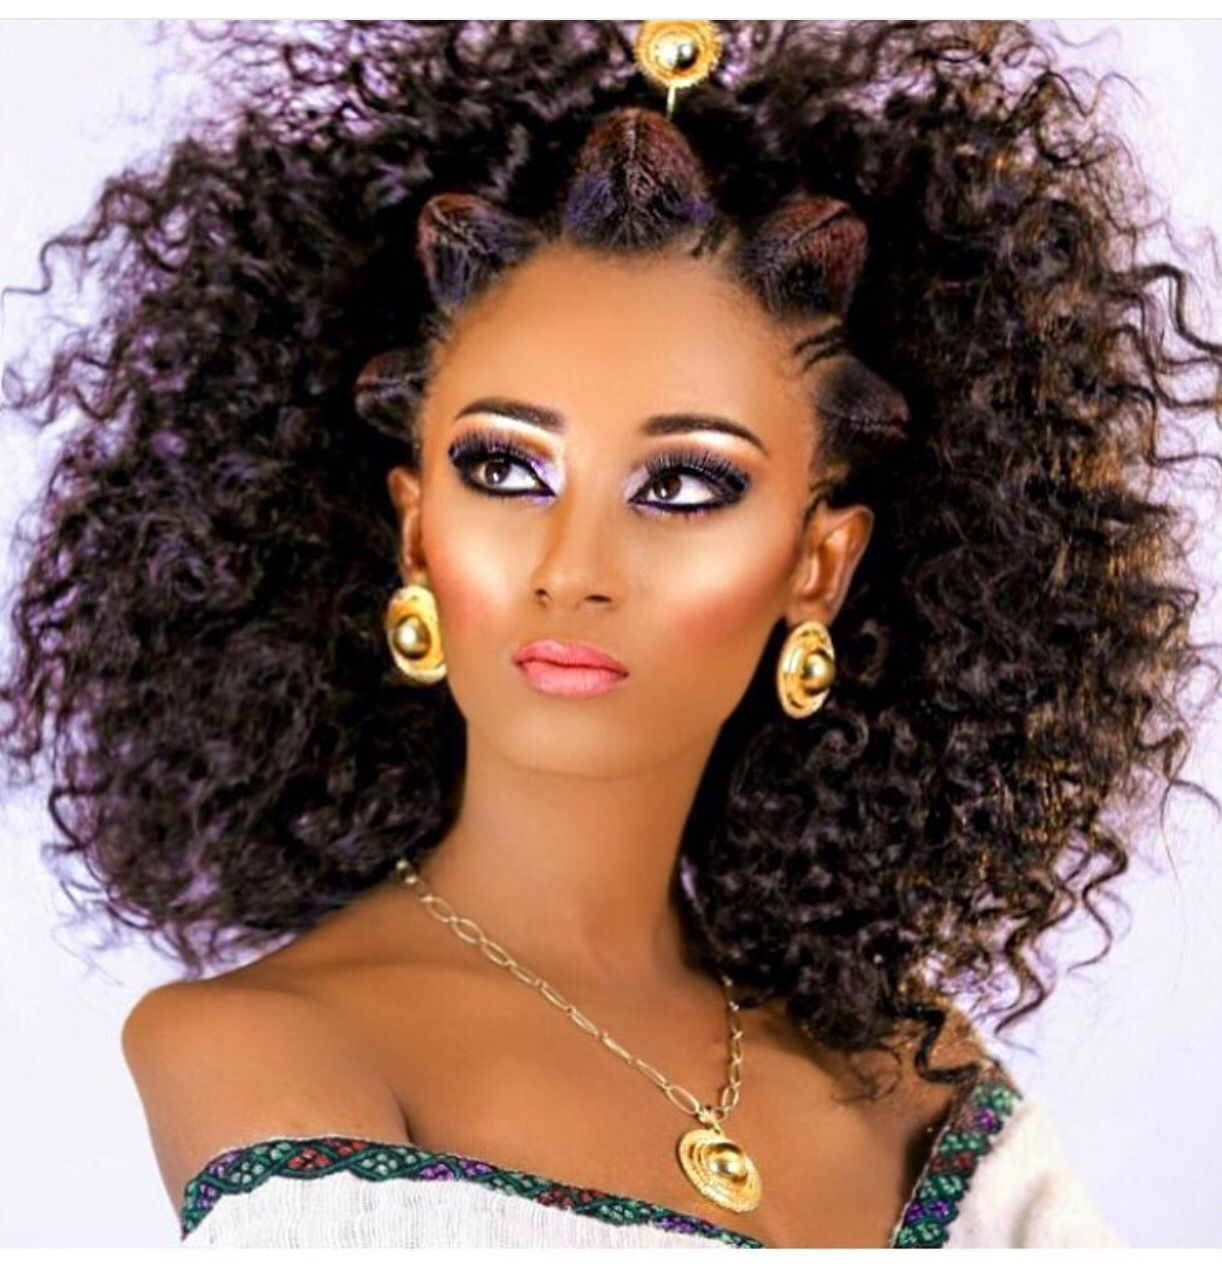 Habesha  Ethiopian hair, Ethiopian beauty, Hair styles